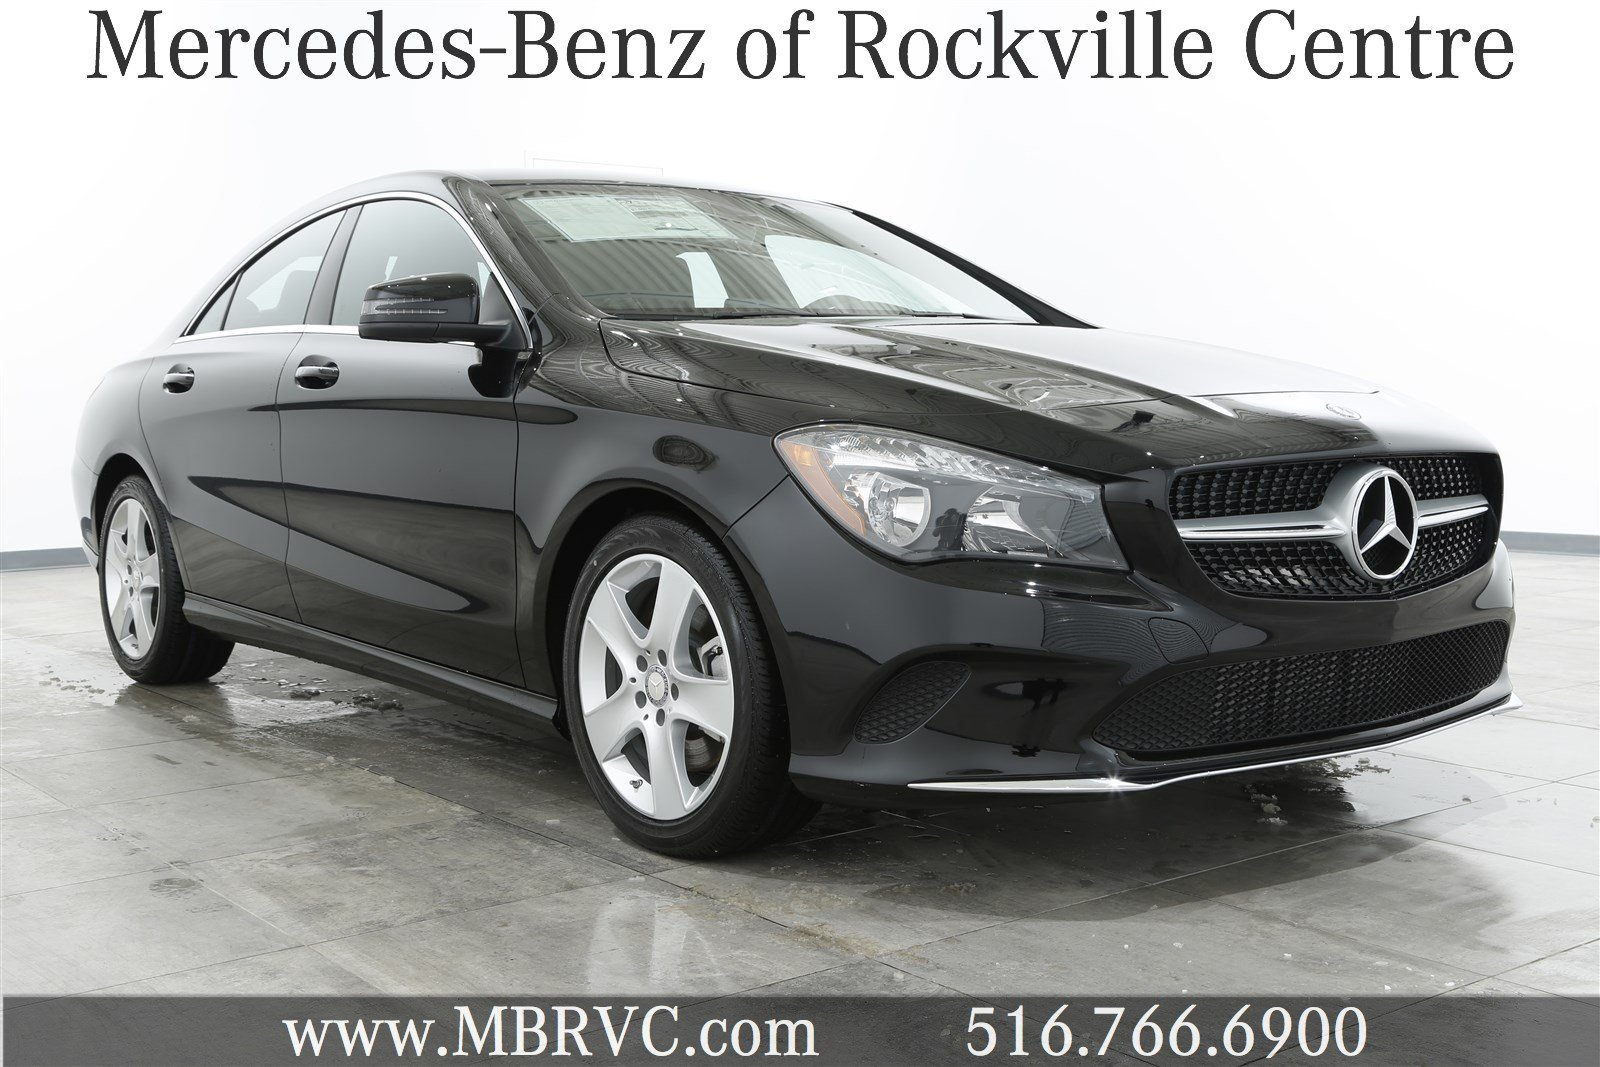 New 2017 mercedes benz cla cla 250 coupe in rockville for Mercedes benz rockville centre